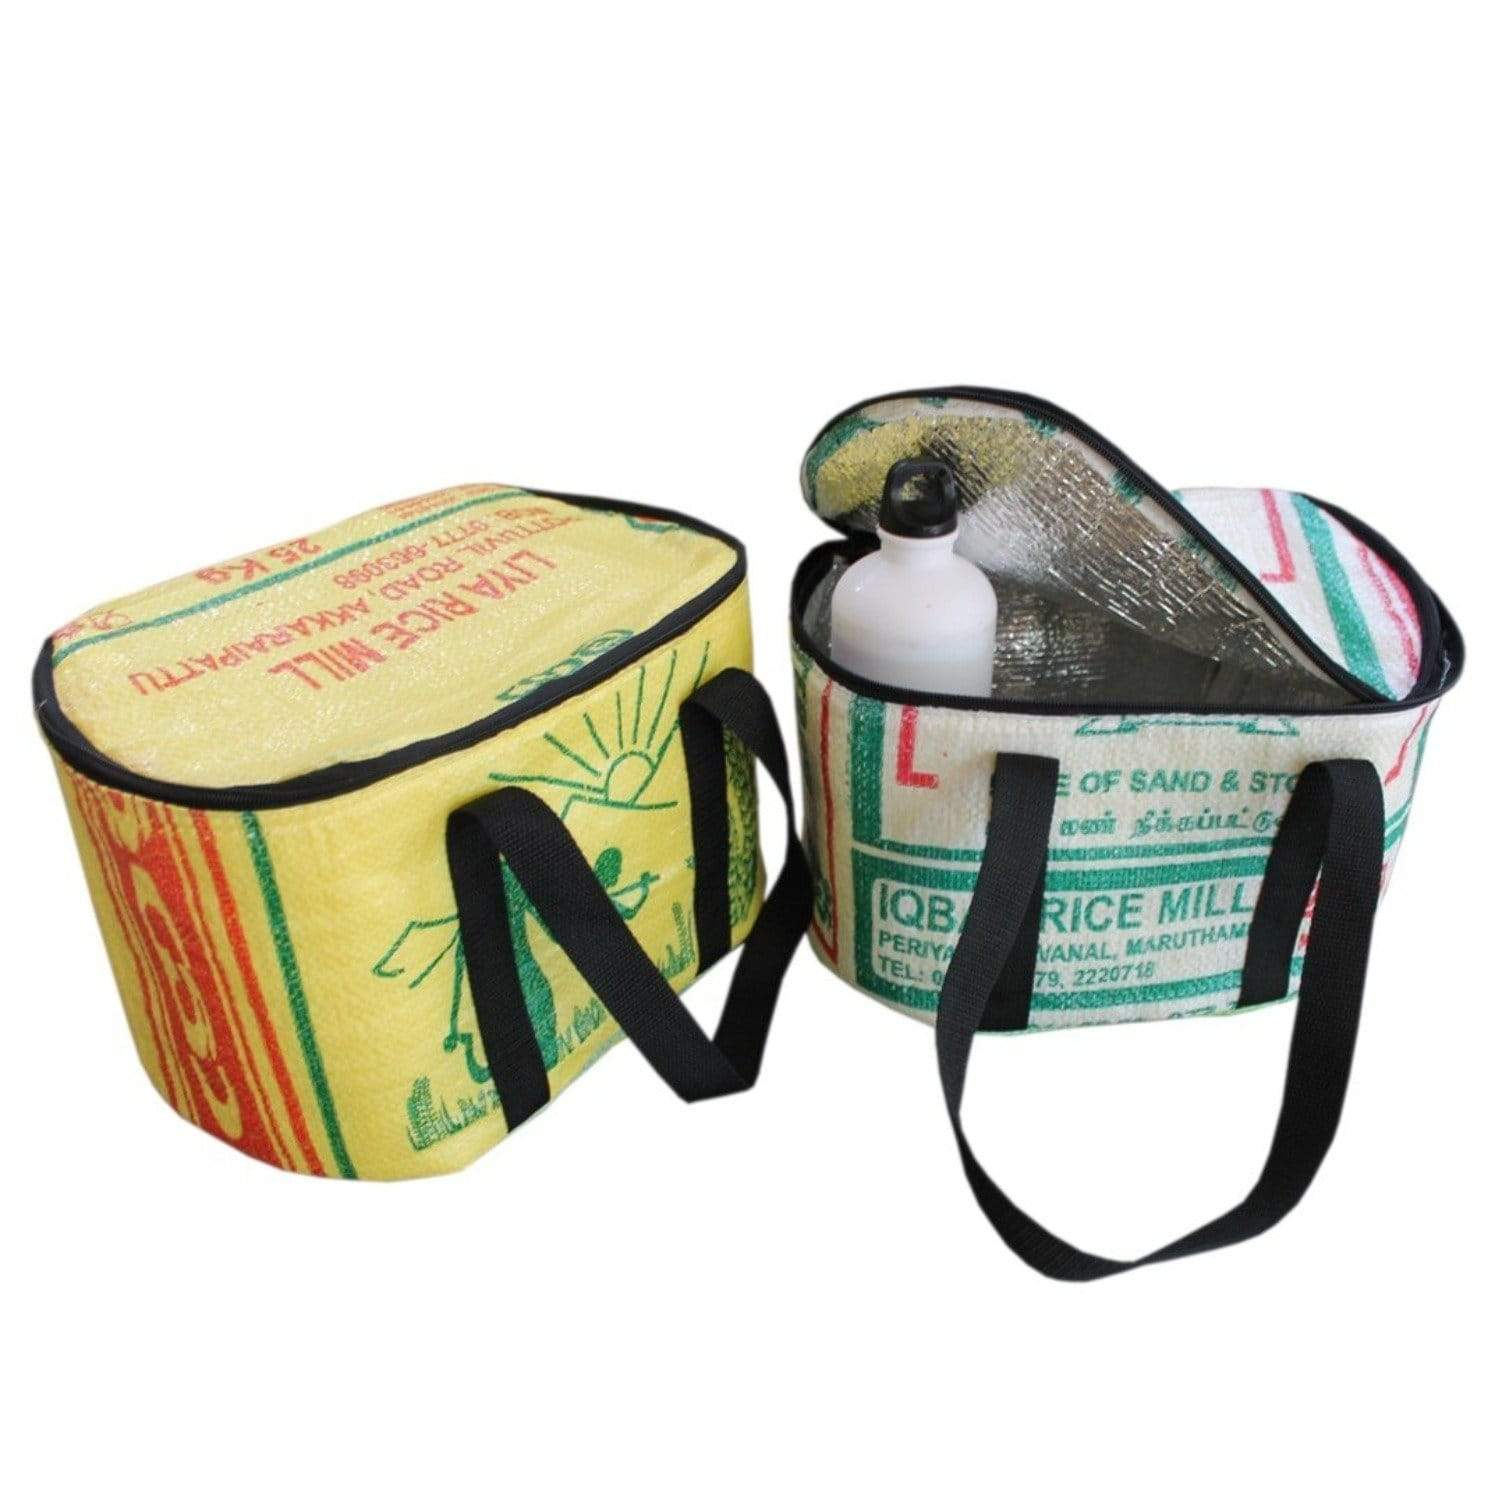 Fair and eco friendly cooler bag Rice & Carry made of up-cycled rice bags